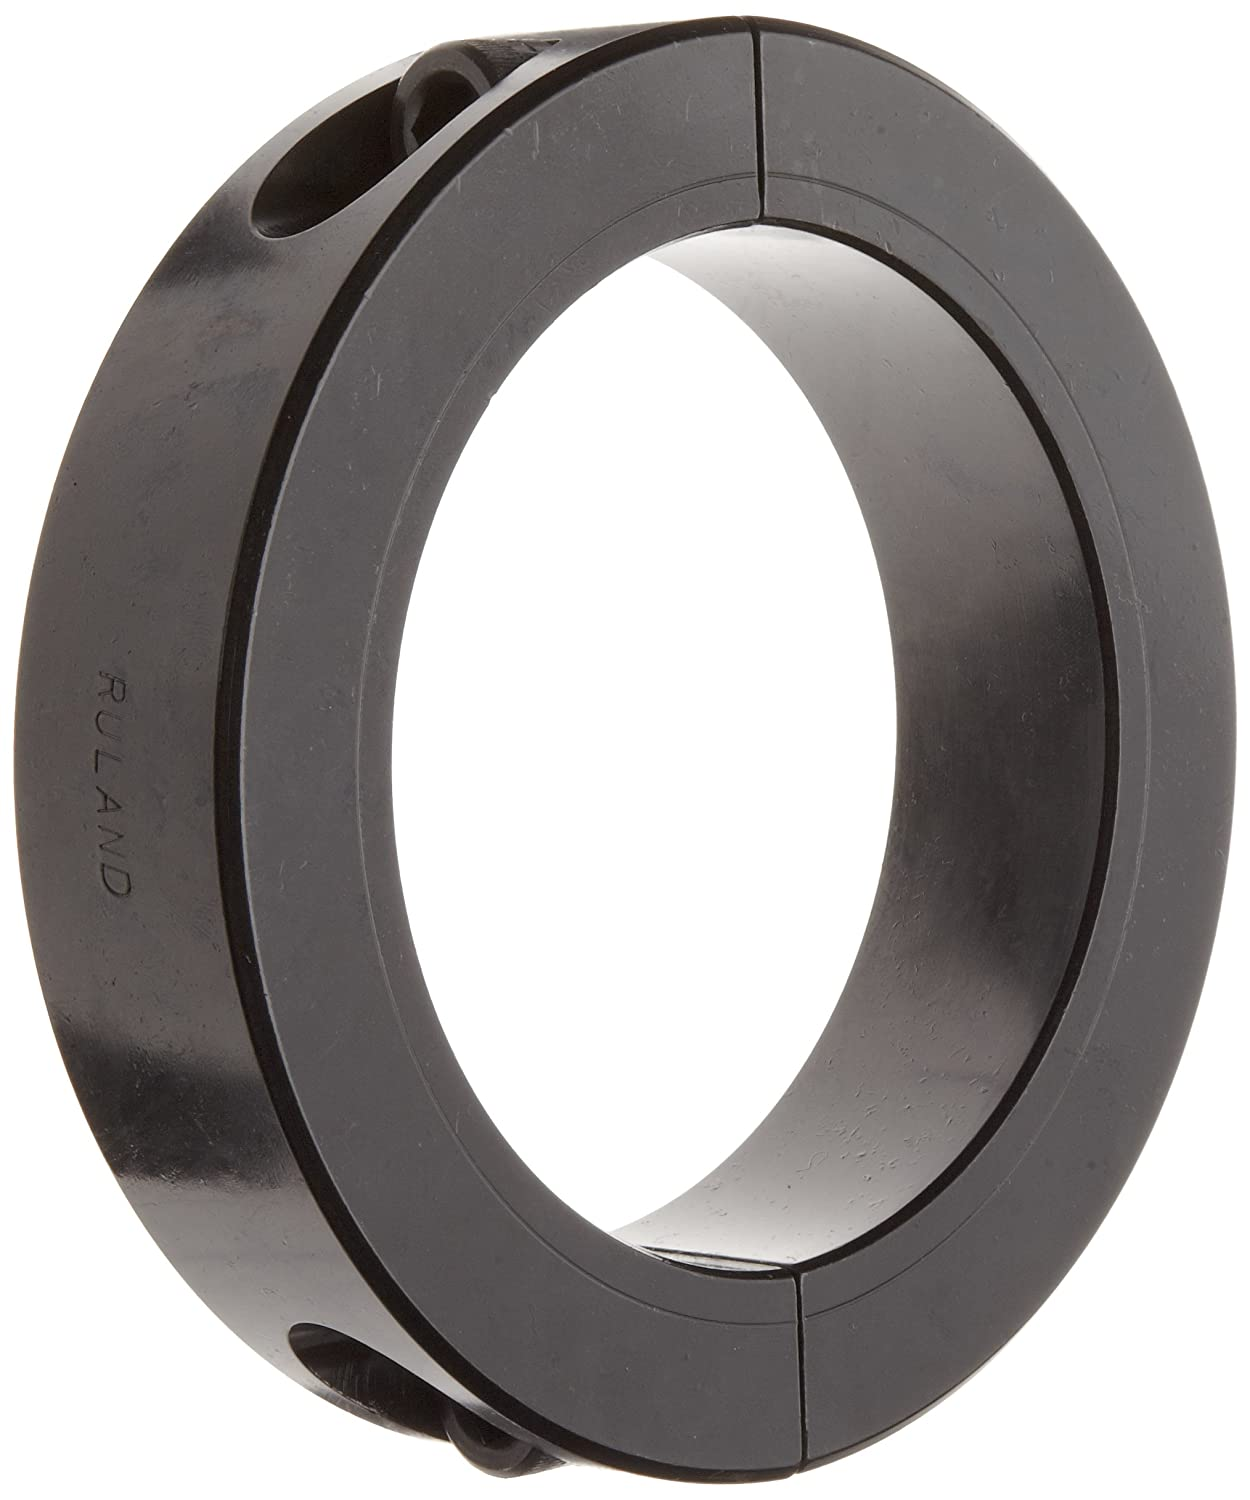 Ruland SPH-80-F Two-Piece Clamping Shaft OFFicial mail order Duty Collar Heavy NEW before selling ☆ Blac